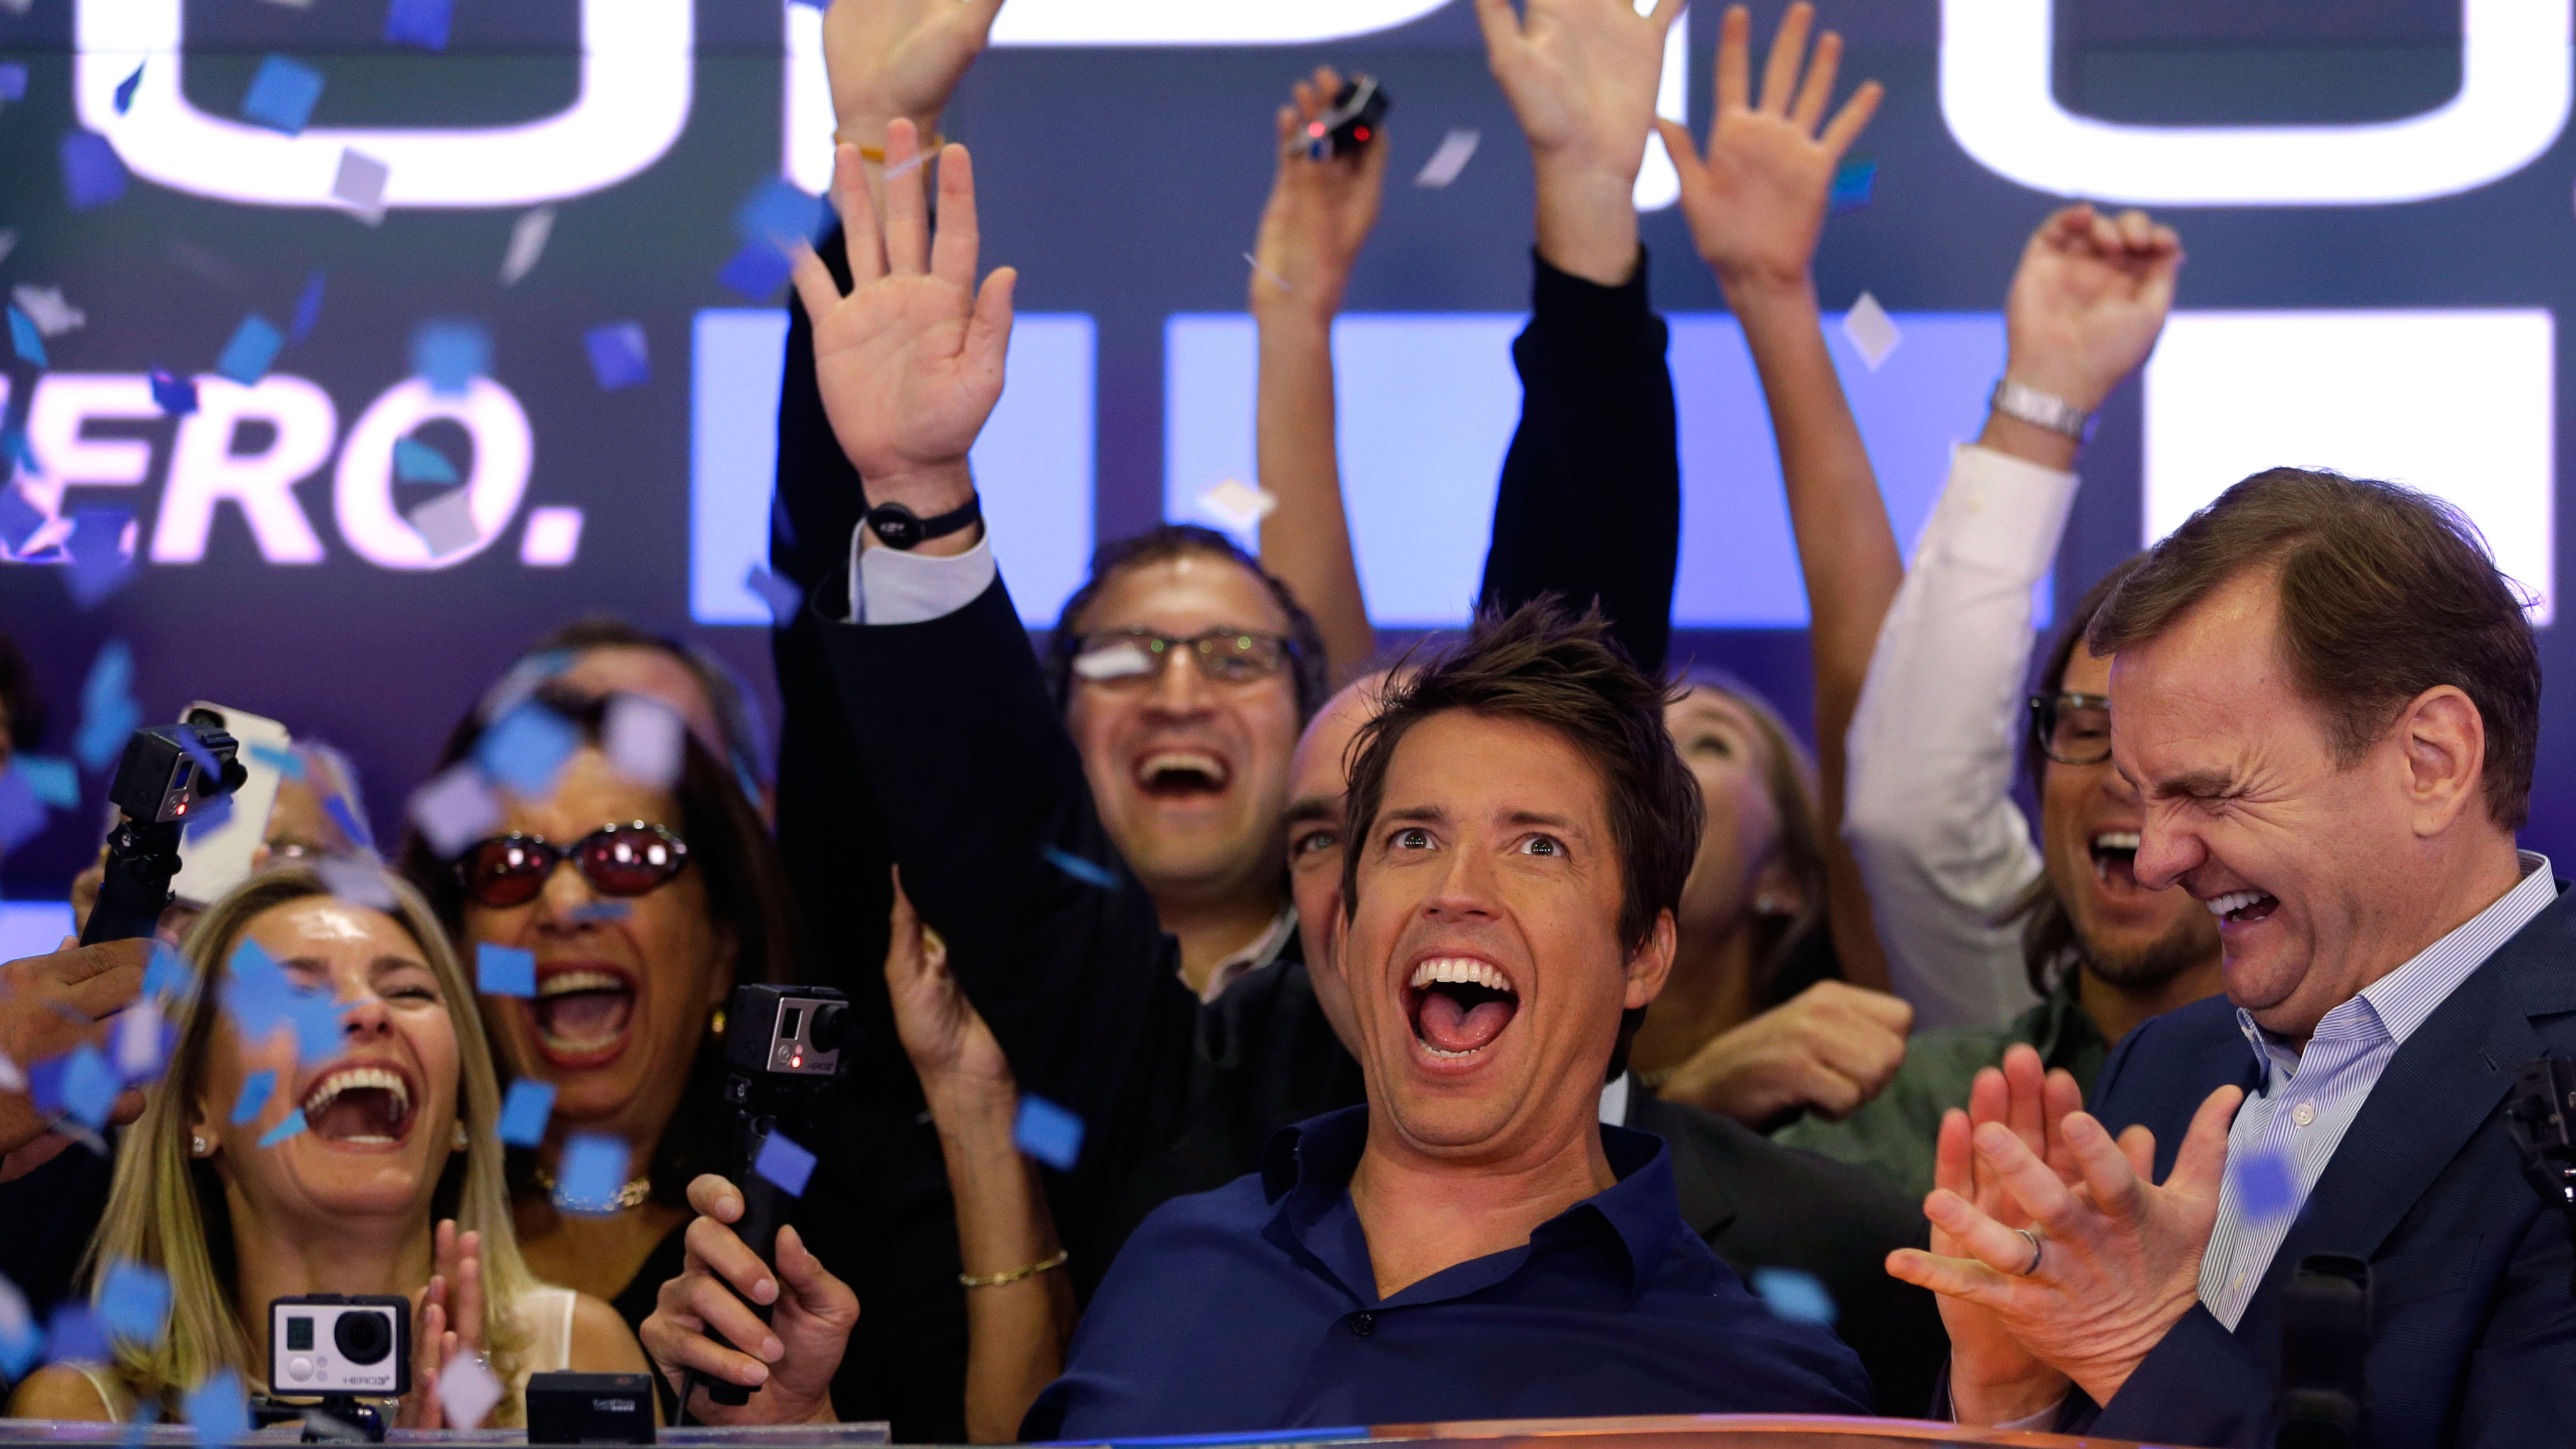 GoPro's CEO Nick Woodman, center, celebrates his company's IPO with family, employees and others at the Nasdaq MarketSite in New York, Thursday, June 26, 2014. GoPro, the maker of wearable sports cameras, loved by mountain climbers, divers, surfers and other extreme sports fans, said late Wednesday it sold 17.8 million shares at $24 each in its initial public offering of stock. (AP Photo/Seth Wenig)